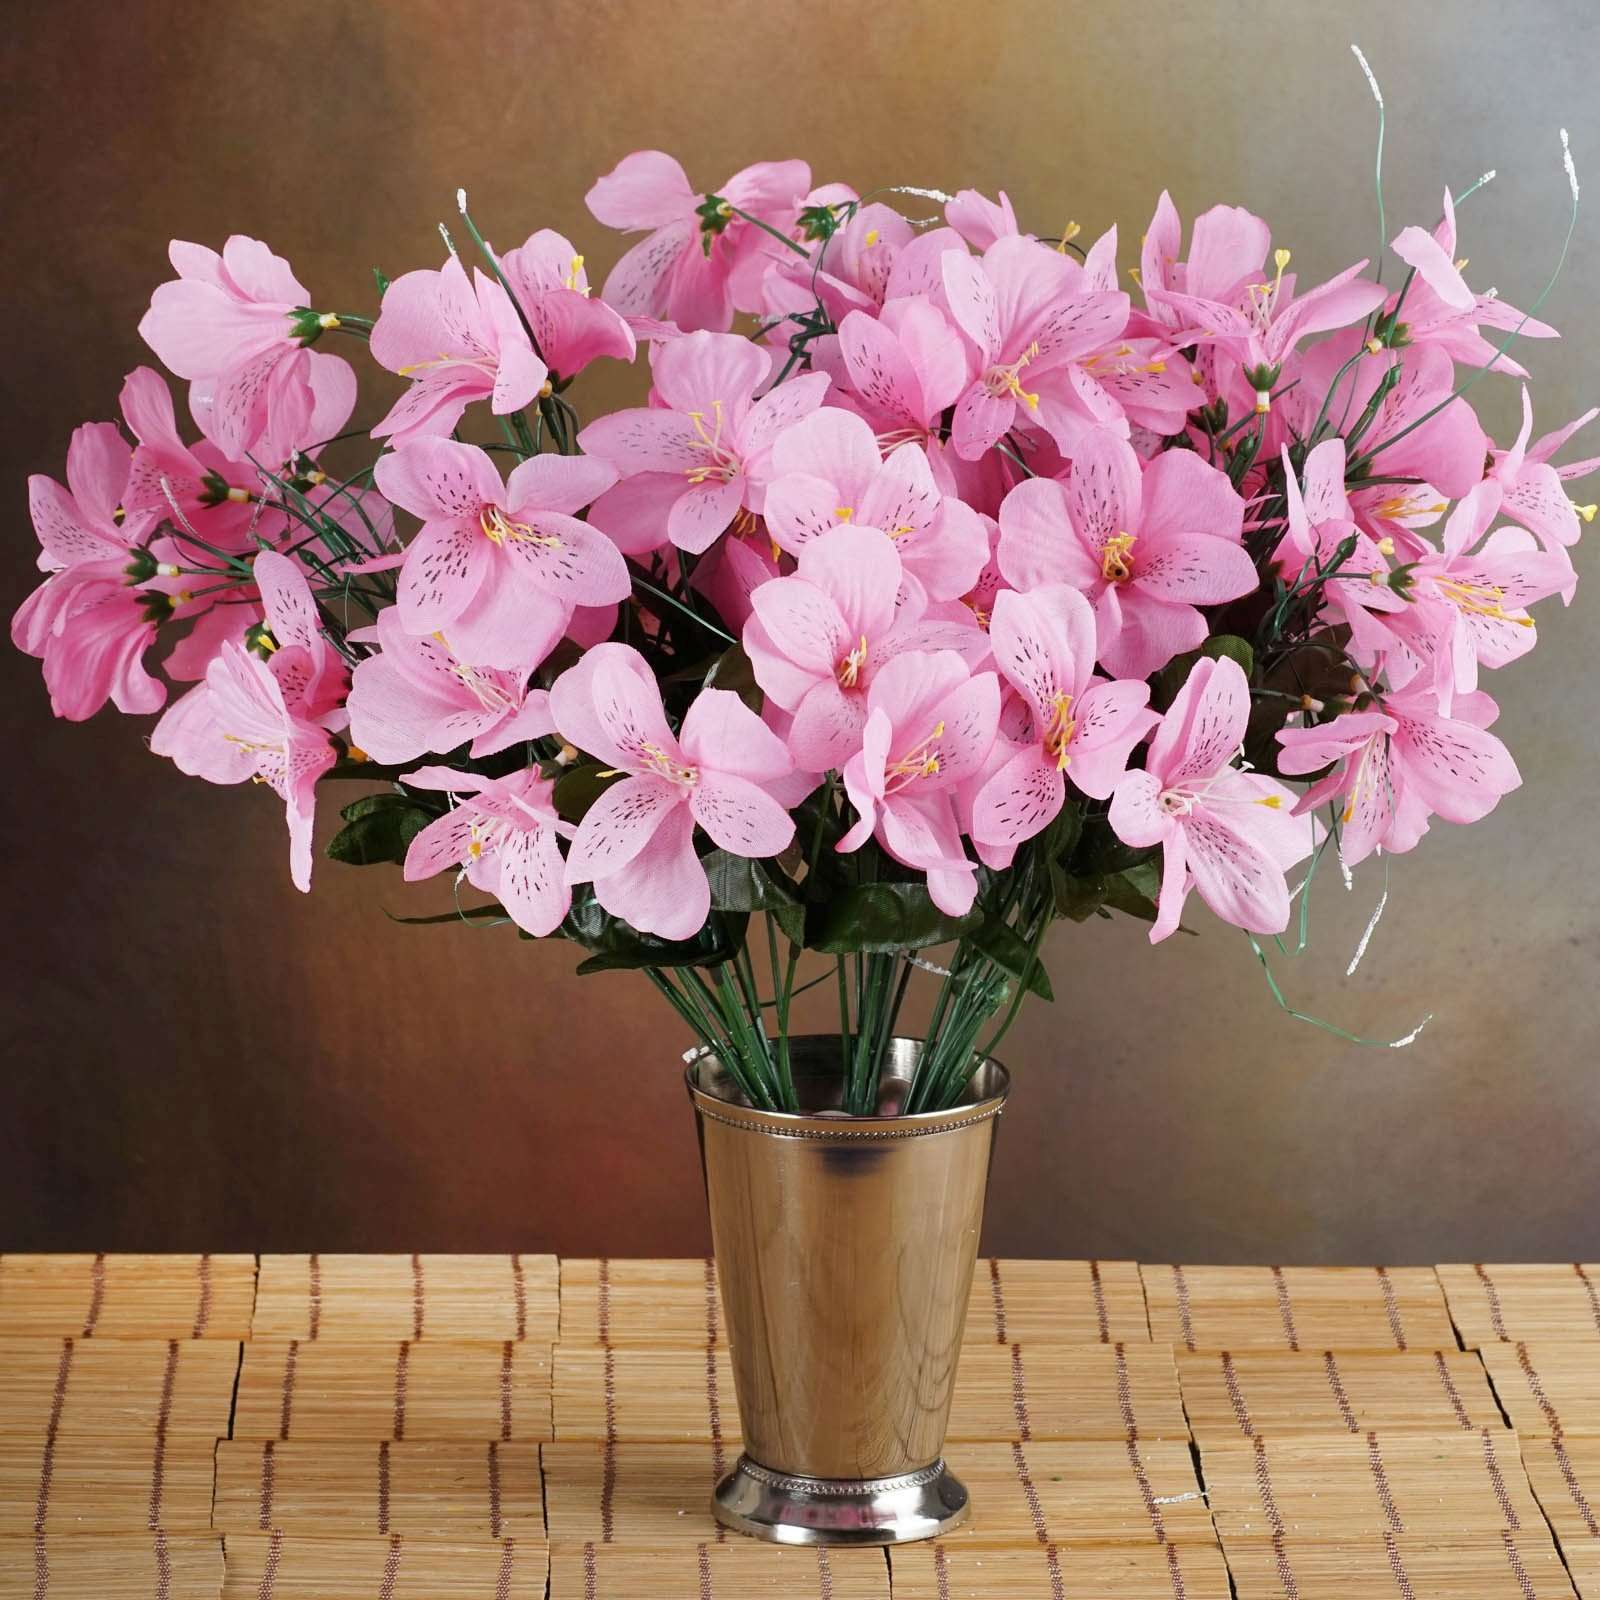 6 Bush 144 Pcs Pink Amaryllis Artificial Silk Flowers Wedding